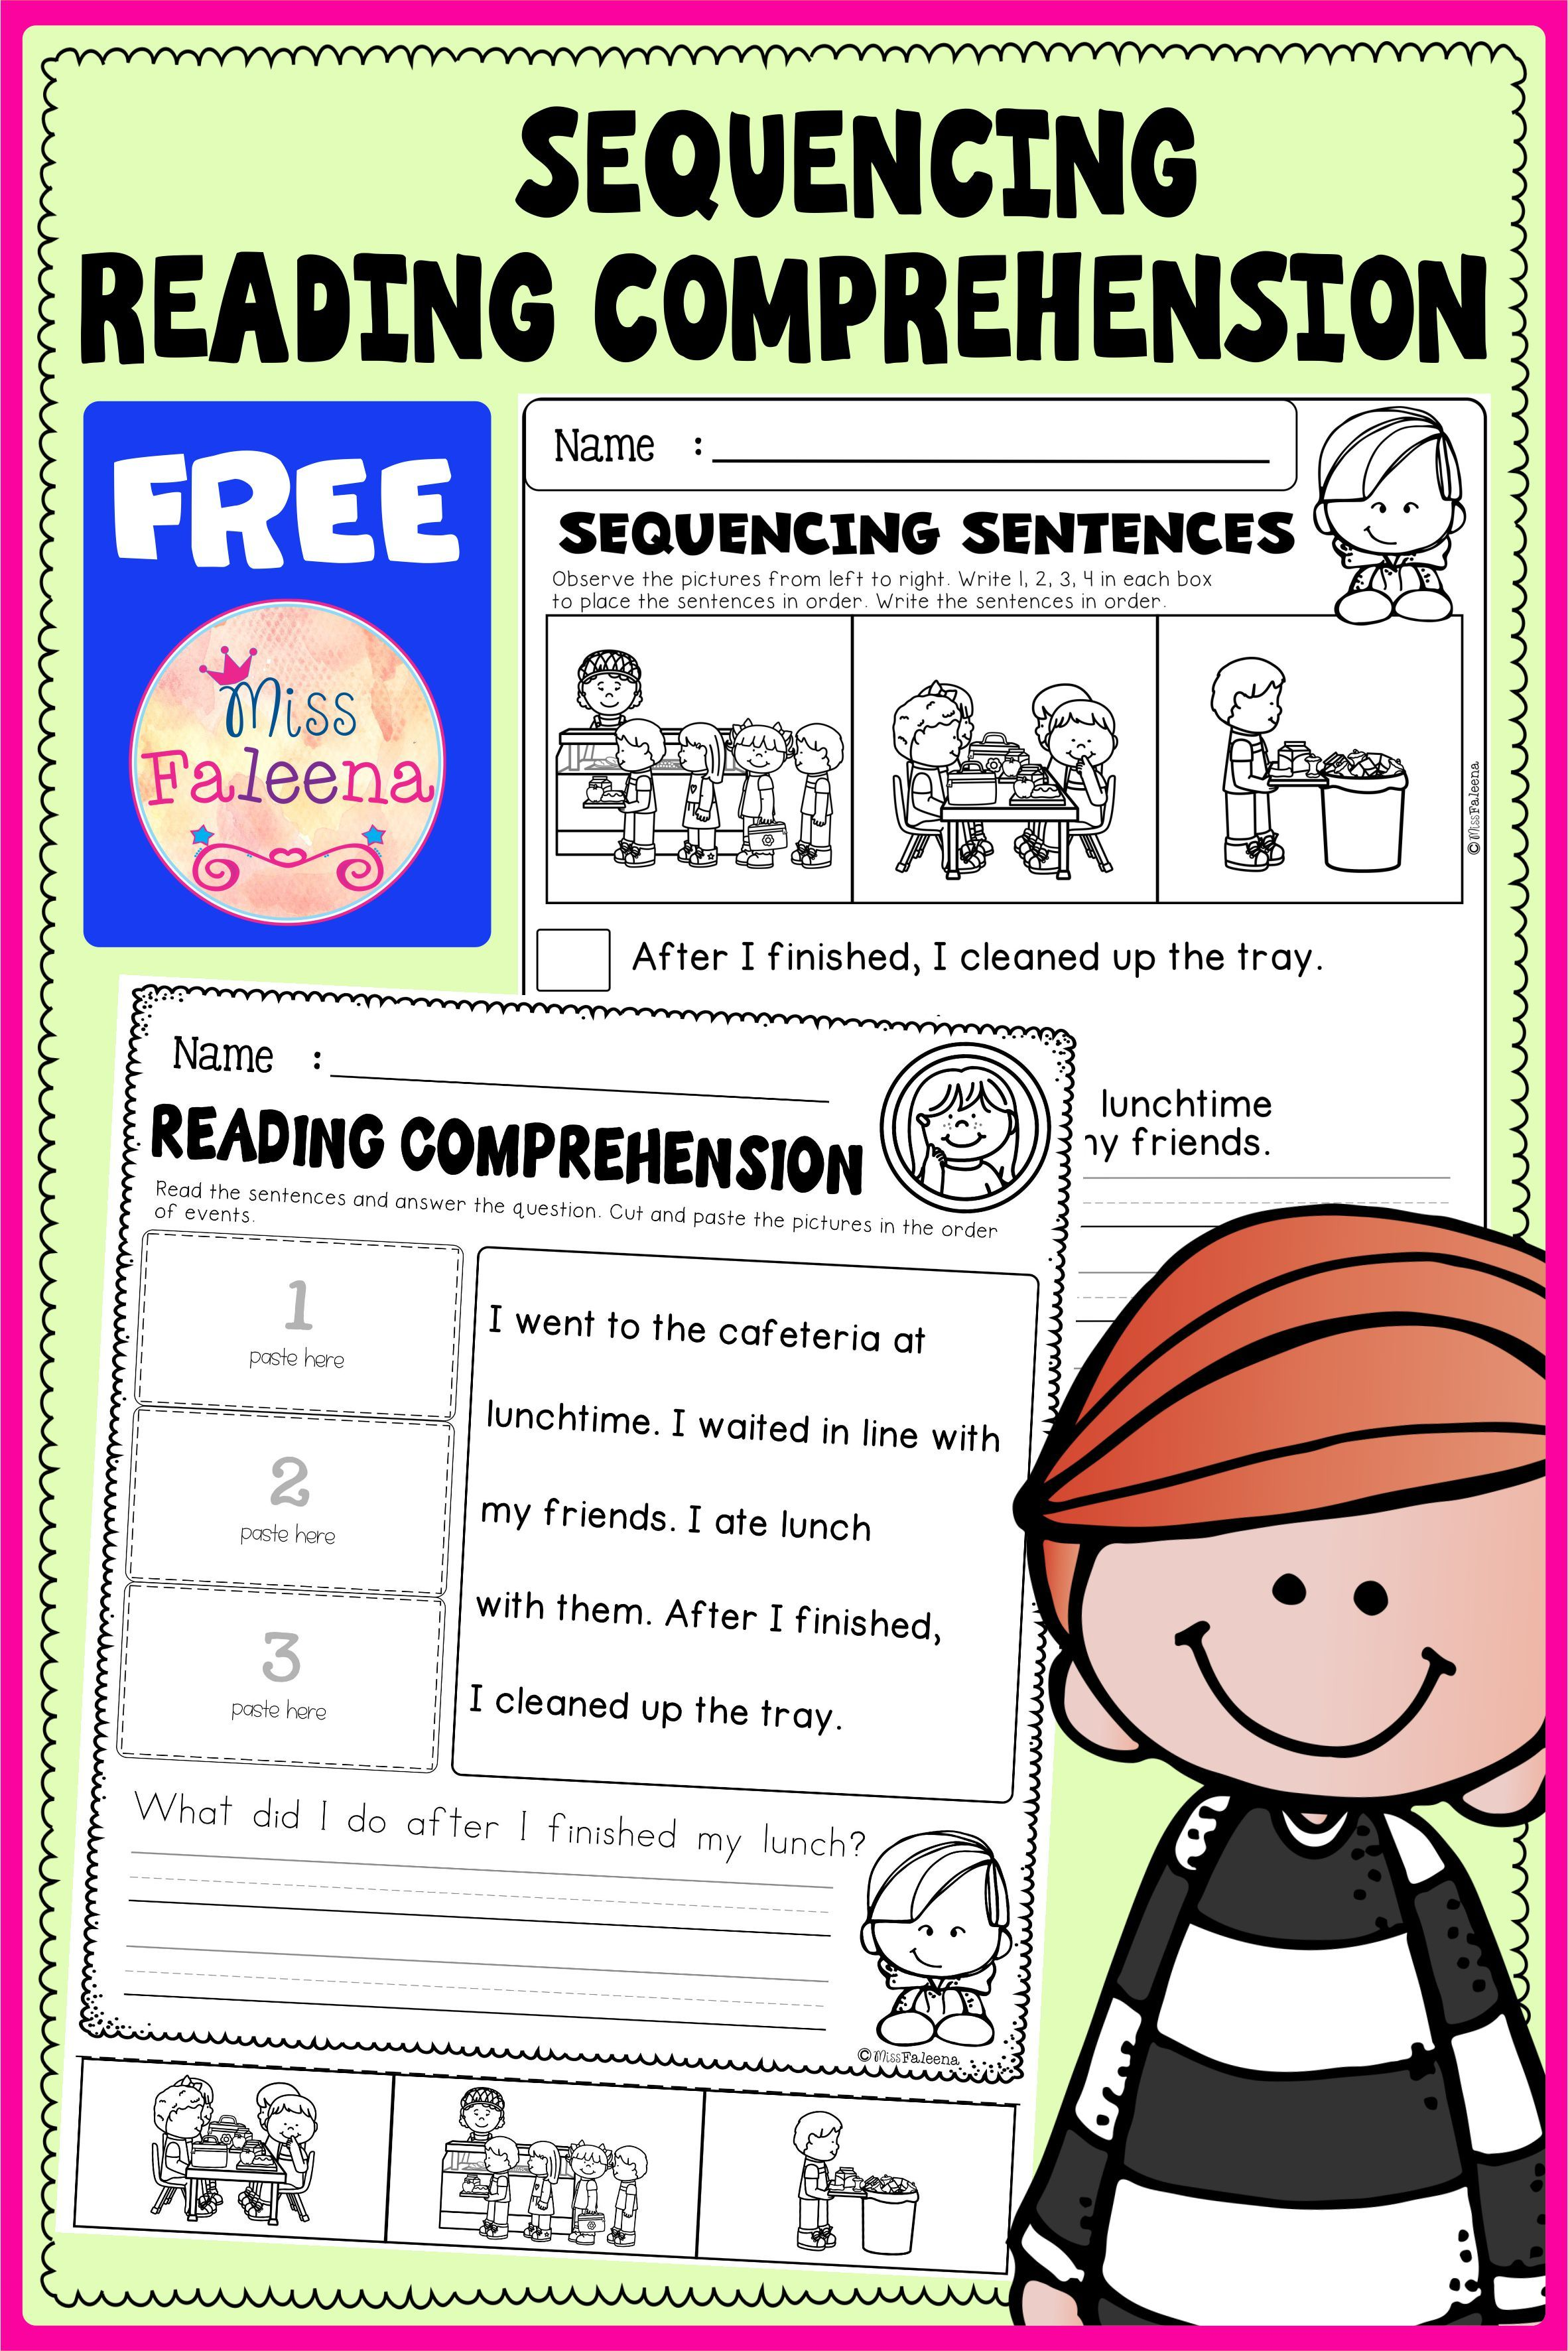 Free Sequencing Reading Comprehension In